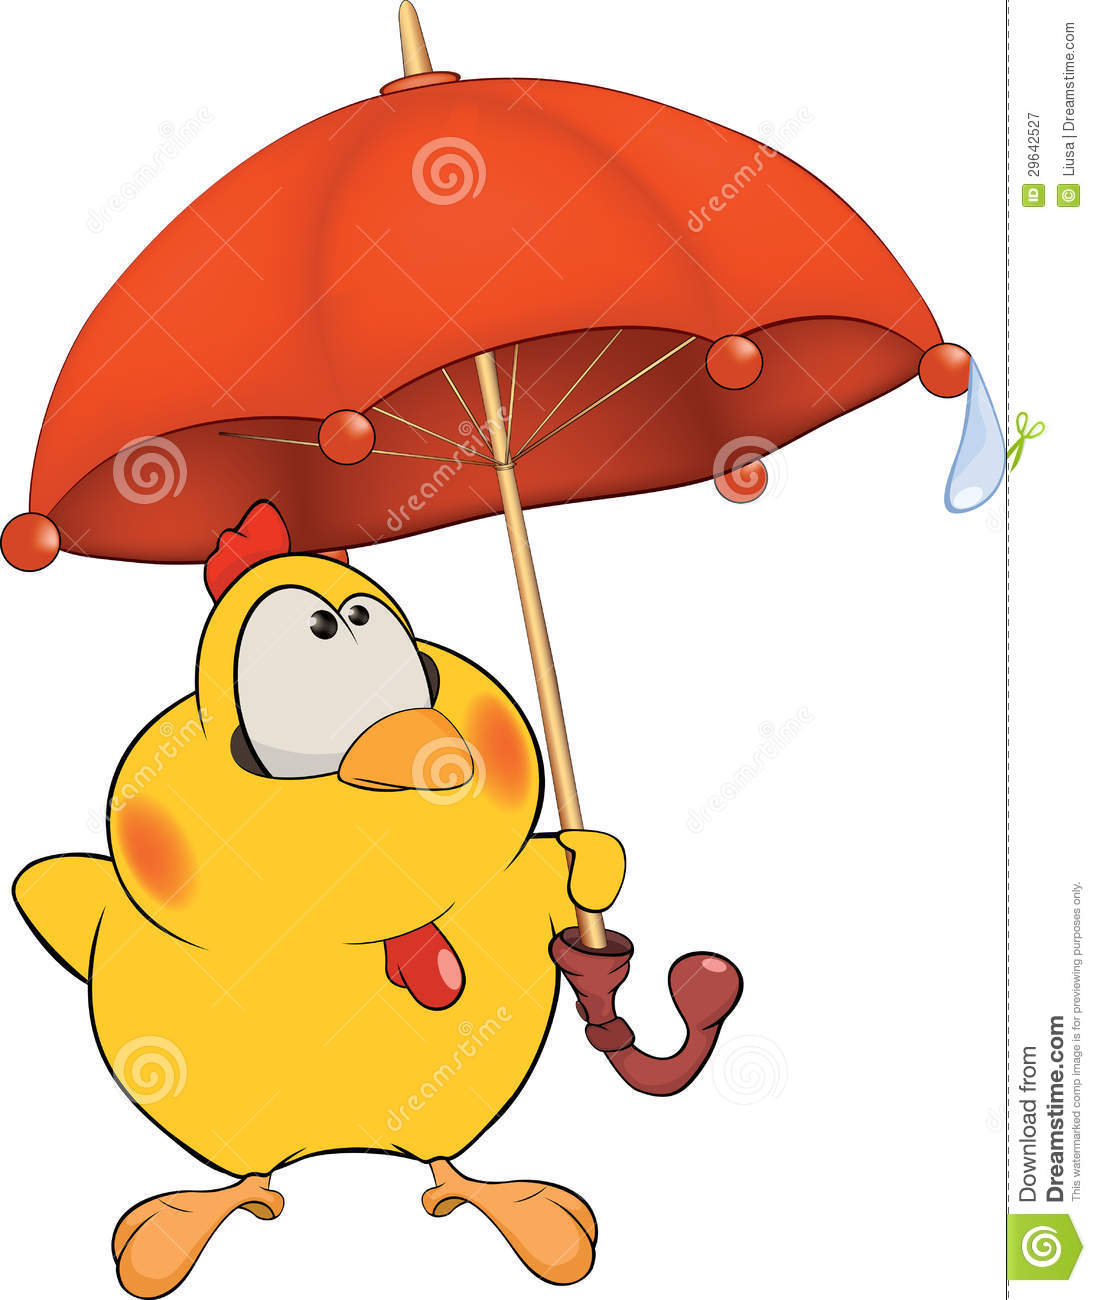 Chicken And An Umbrella Cartoon Royalty Free Stock Photography - Image ...